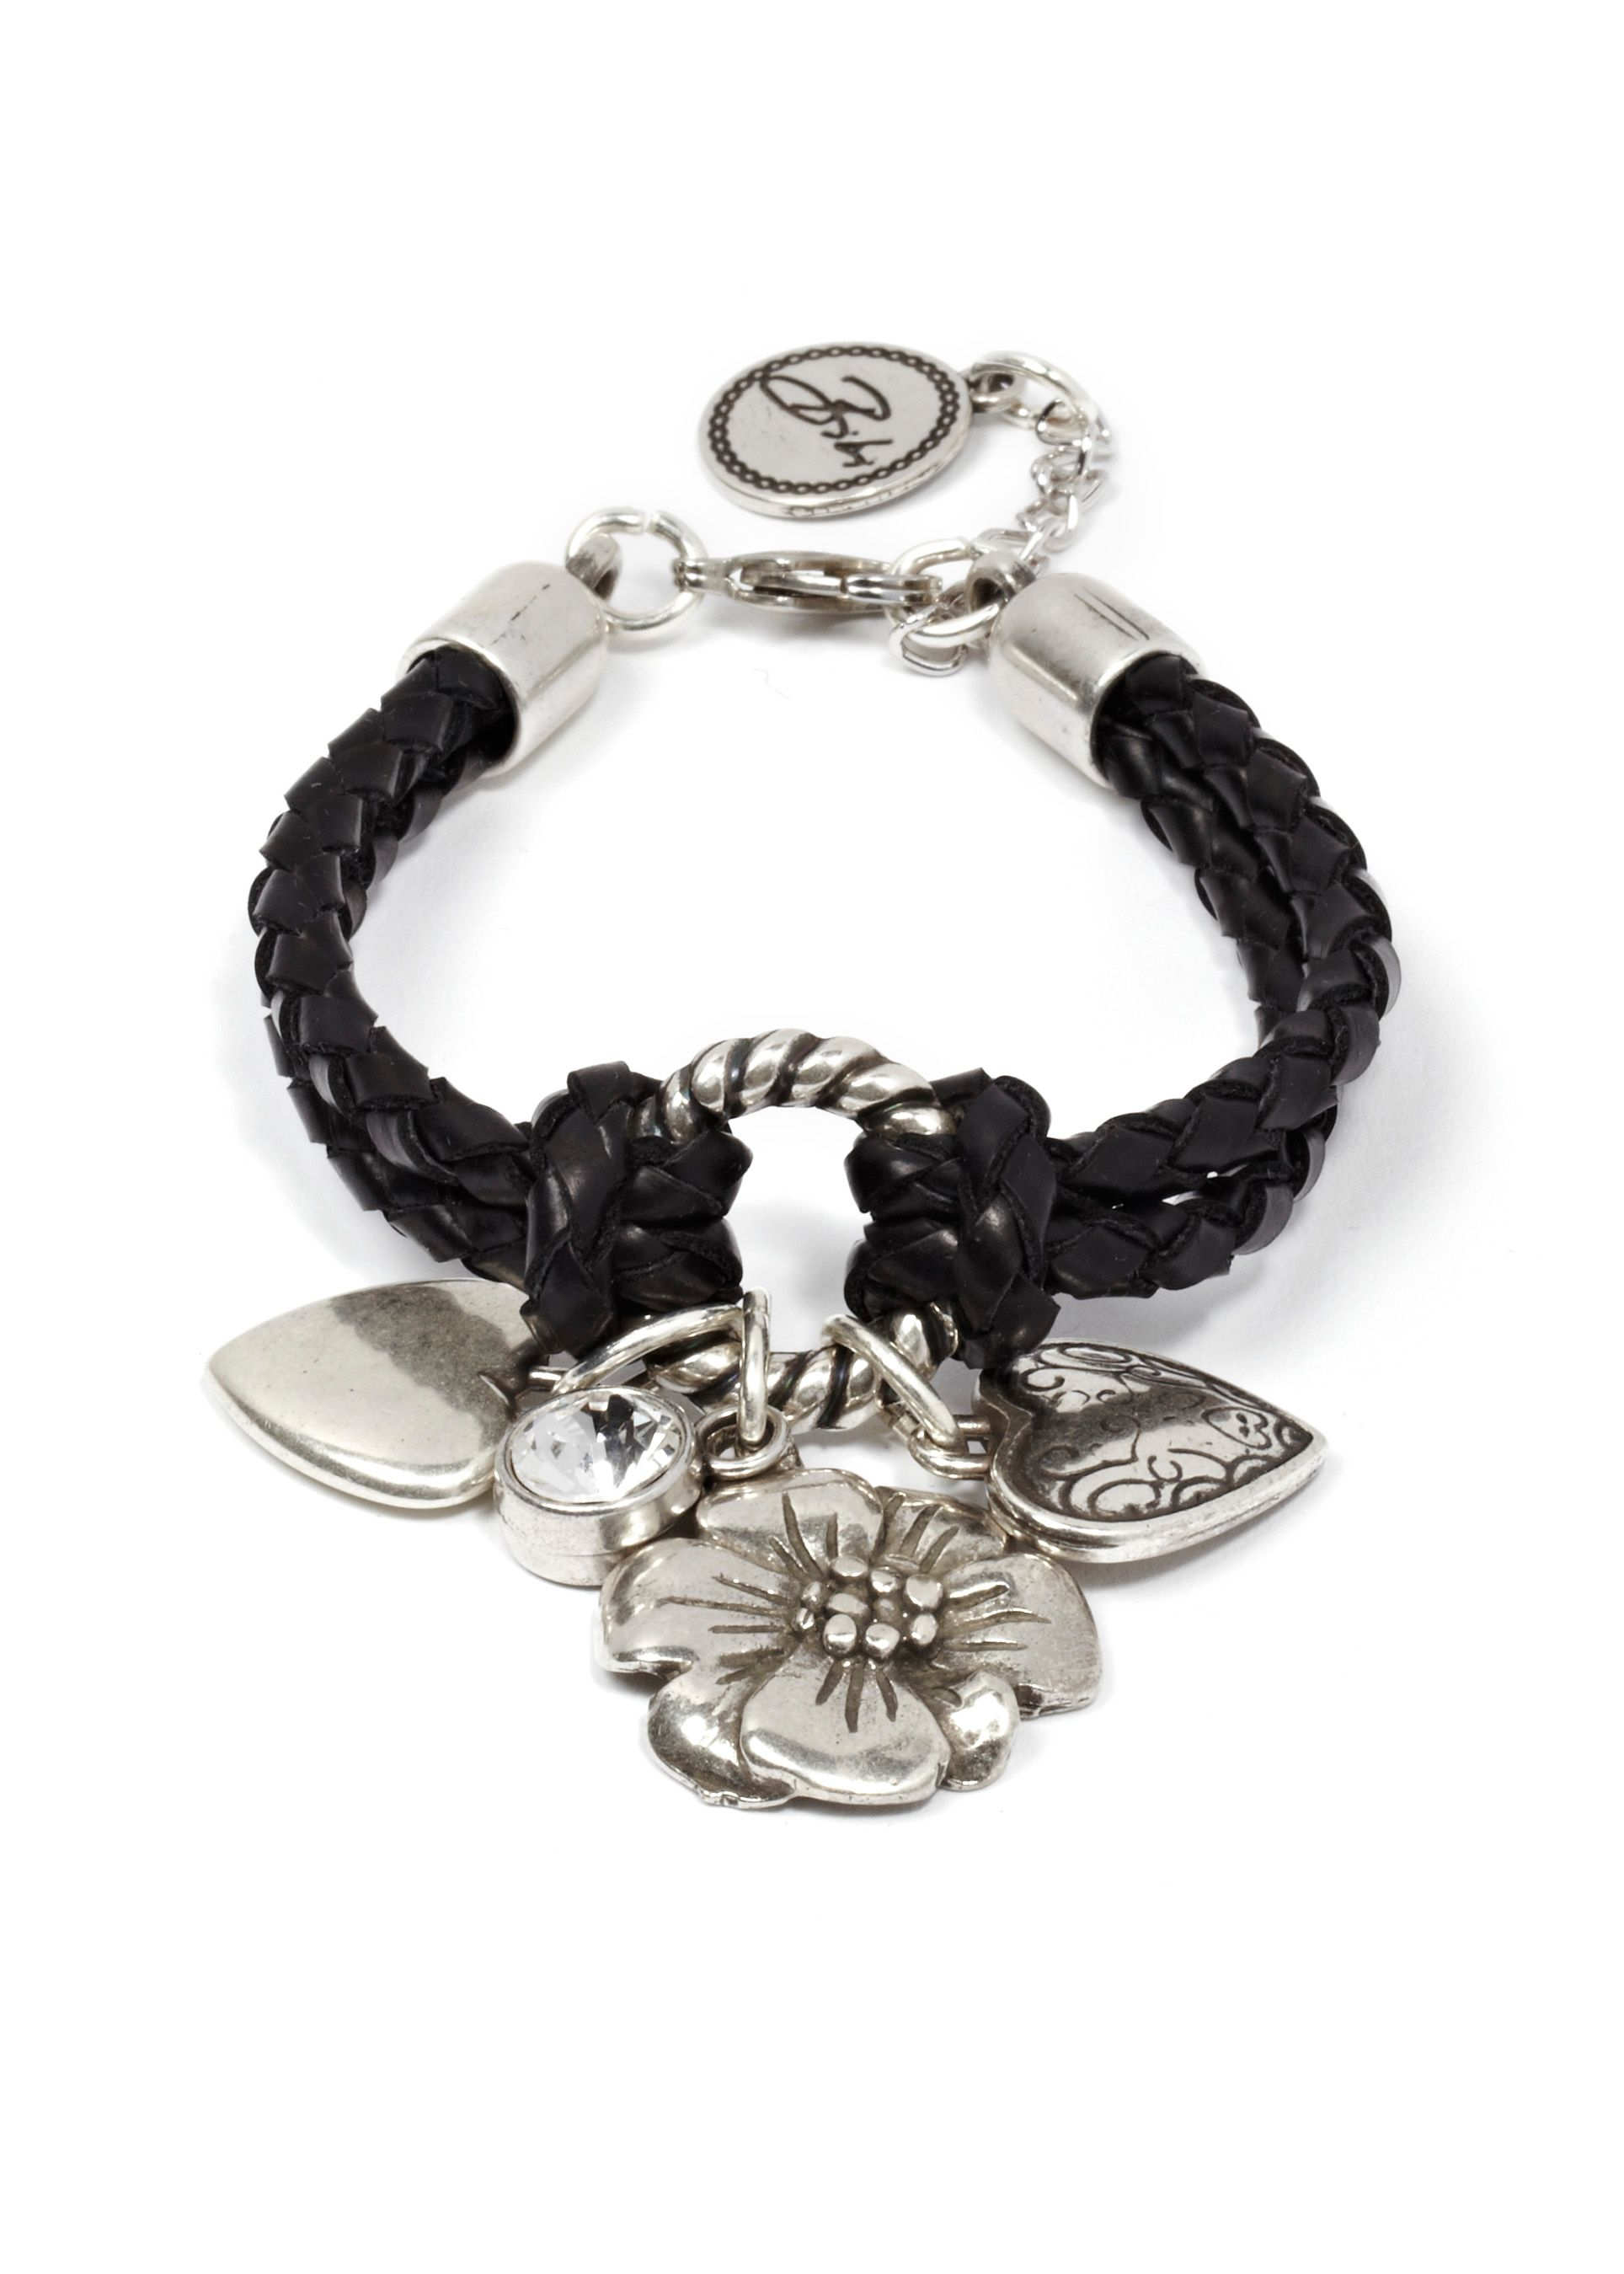 Iris leather ring & charms bracelet